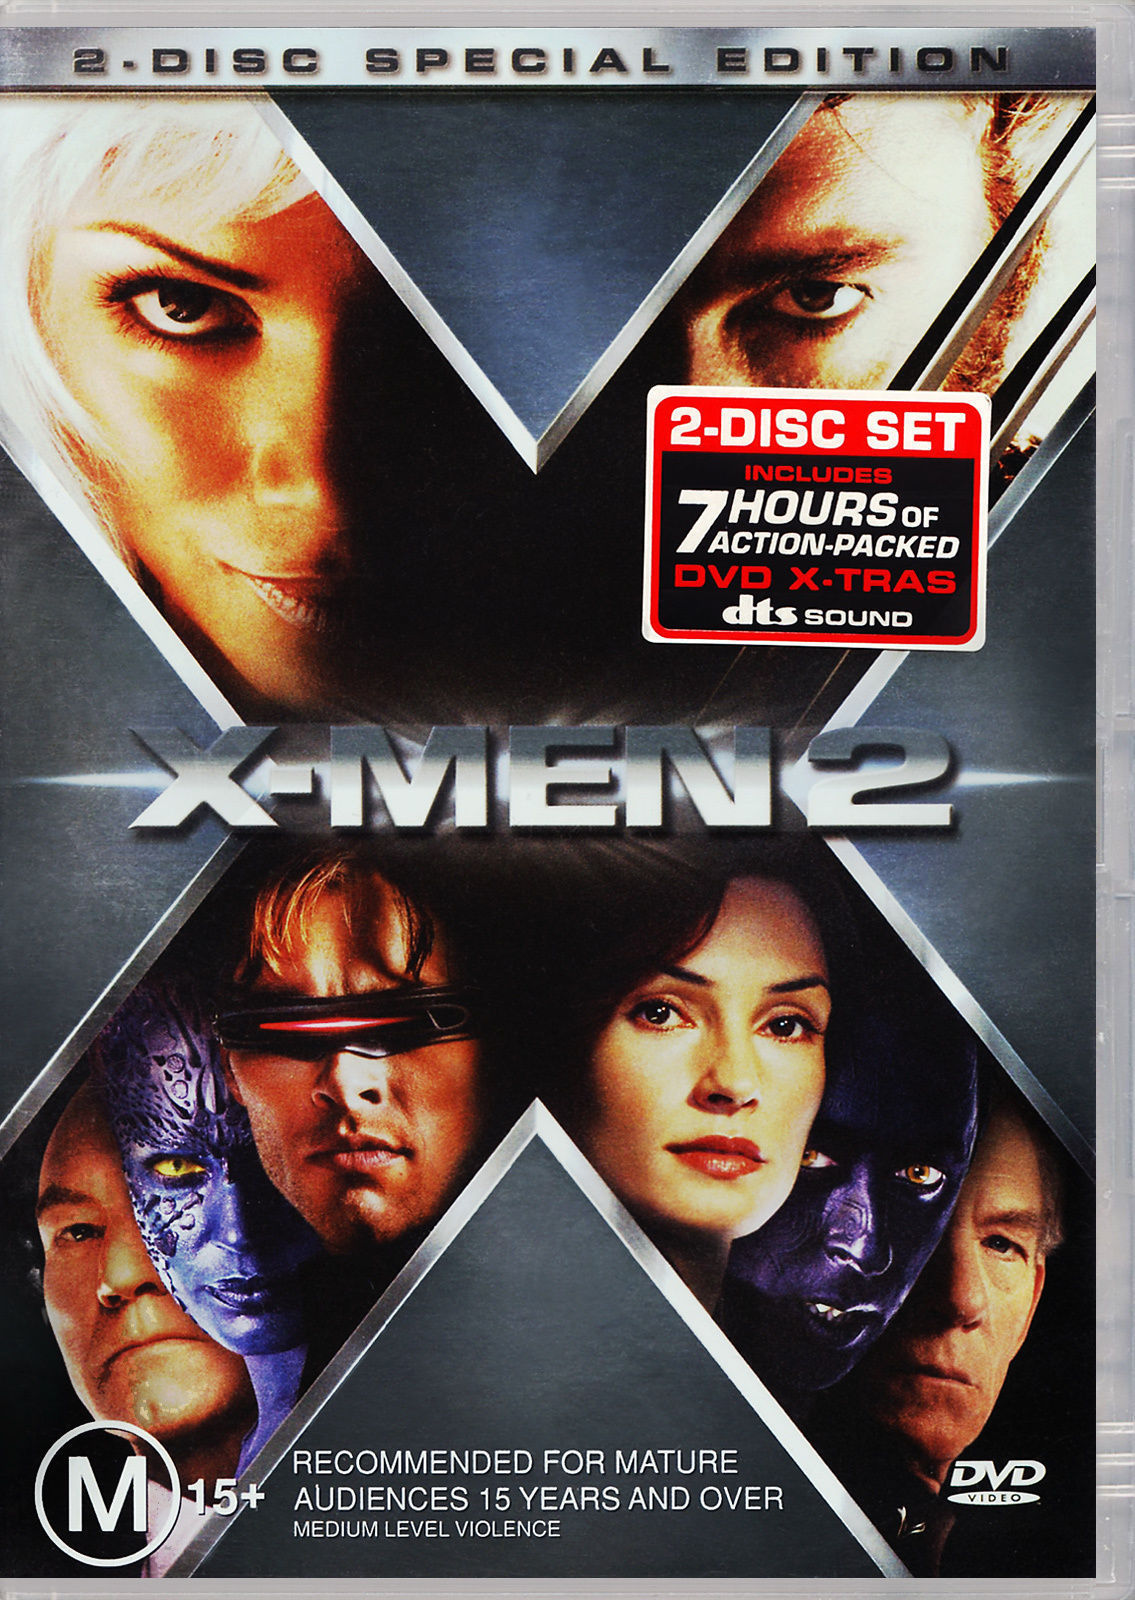 DVD - X-Men 2 : 2 Disc Special Edition [2003] (Preowned)